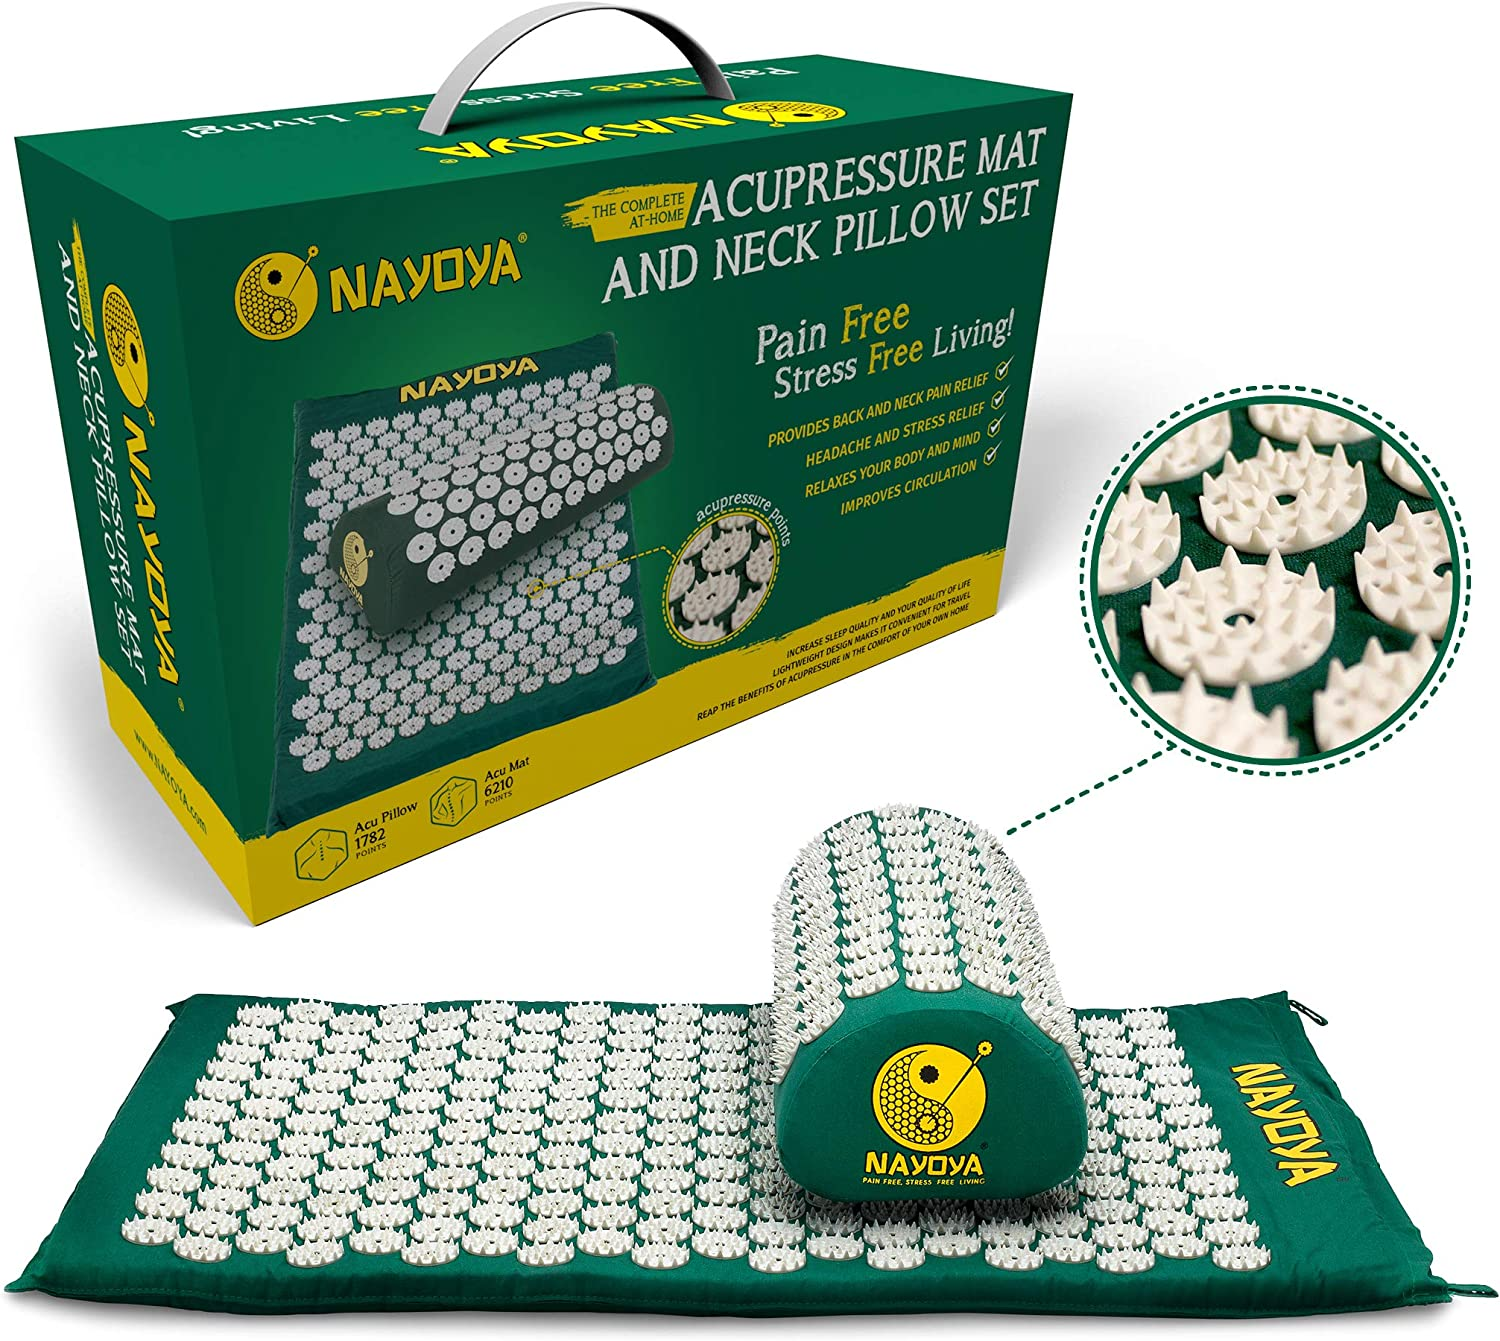 At Home Back and Neck Pain Relief - Acupressure Mat and Neck Pillow Set - Relieves Stress and Sciatic Pain for Optimal Health and Wellness - Comes in a Carry Box with Handle for Storage and Travel: Health & Personal Care